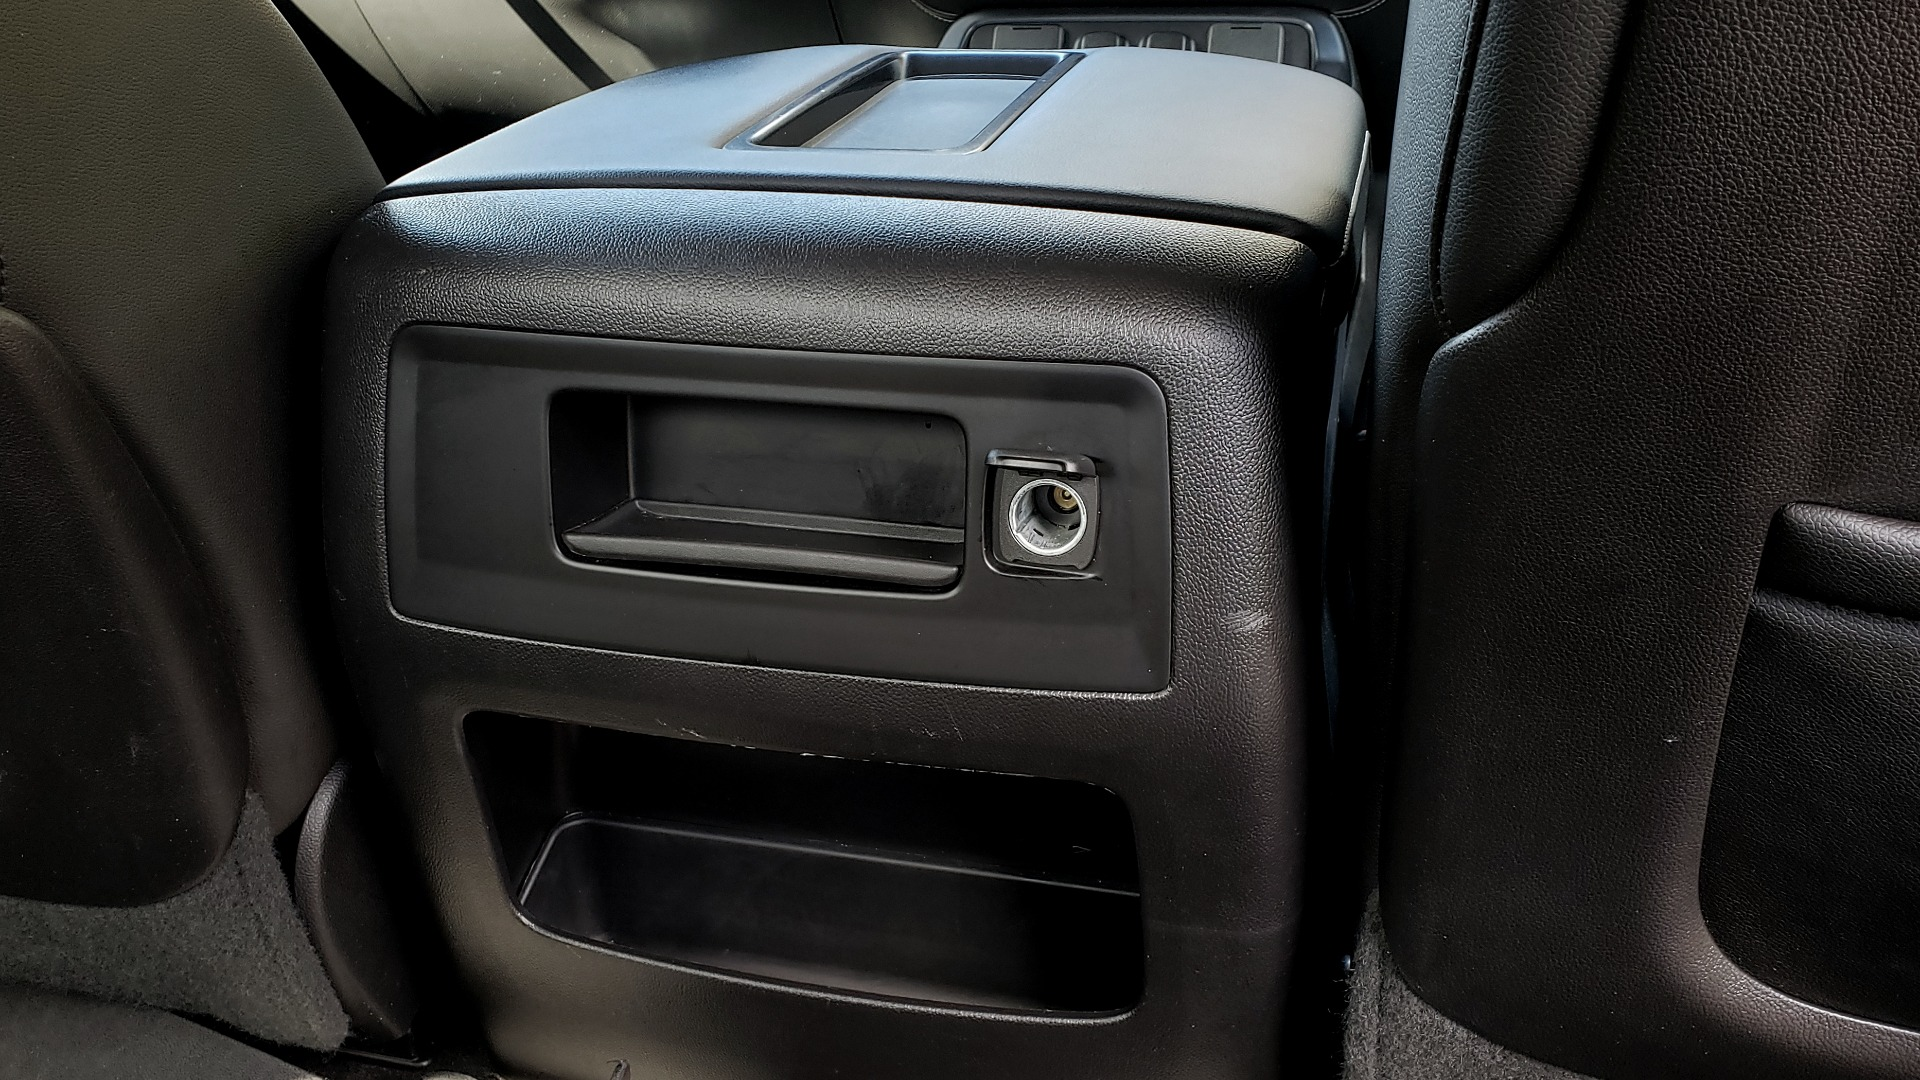 Used 2014 Chevrolet SILVERADO 1500 CREWCAB / LTZ PLUS PKG / 4WD / 2LZ / NAV / BOSE / REARVIEW for sale Sold at Formula Imports in Charlotte NC 28227 79